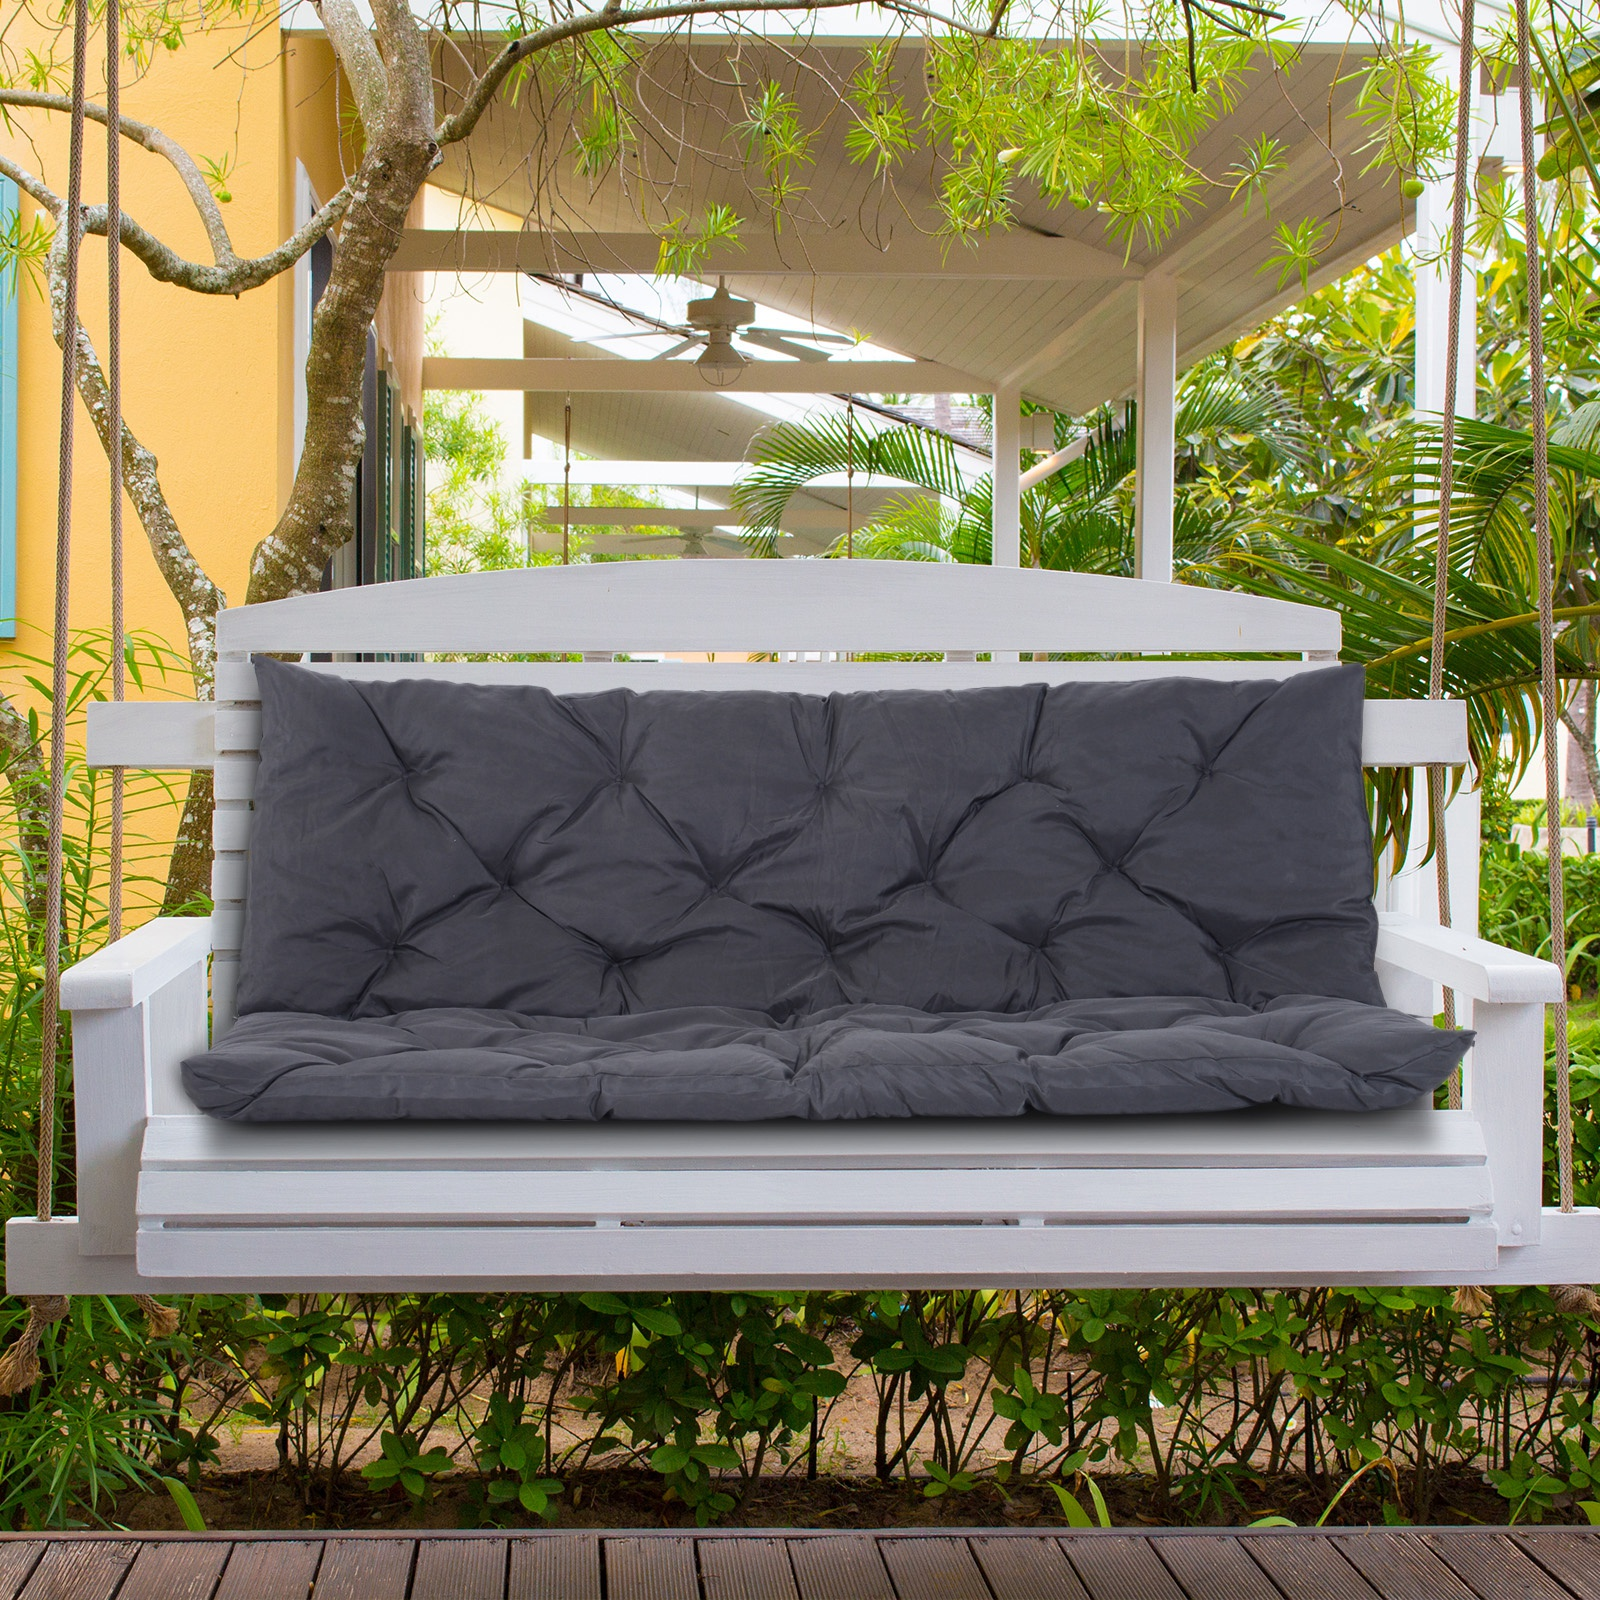 3-Seater-2-Seater-Bench-Swing-Seat-Cushion-ONLY-Garden-Furniture-Pad-Backrest thumbnail 18